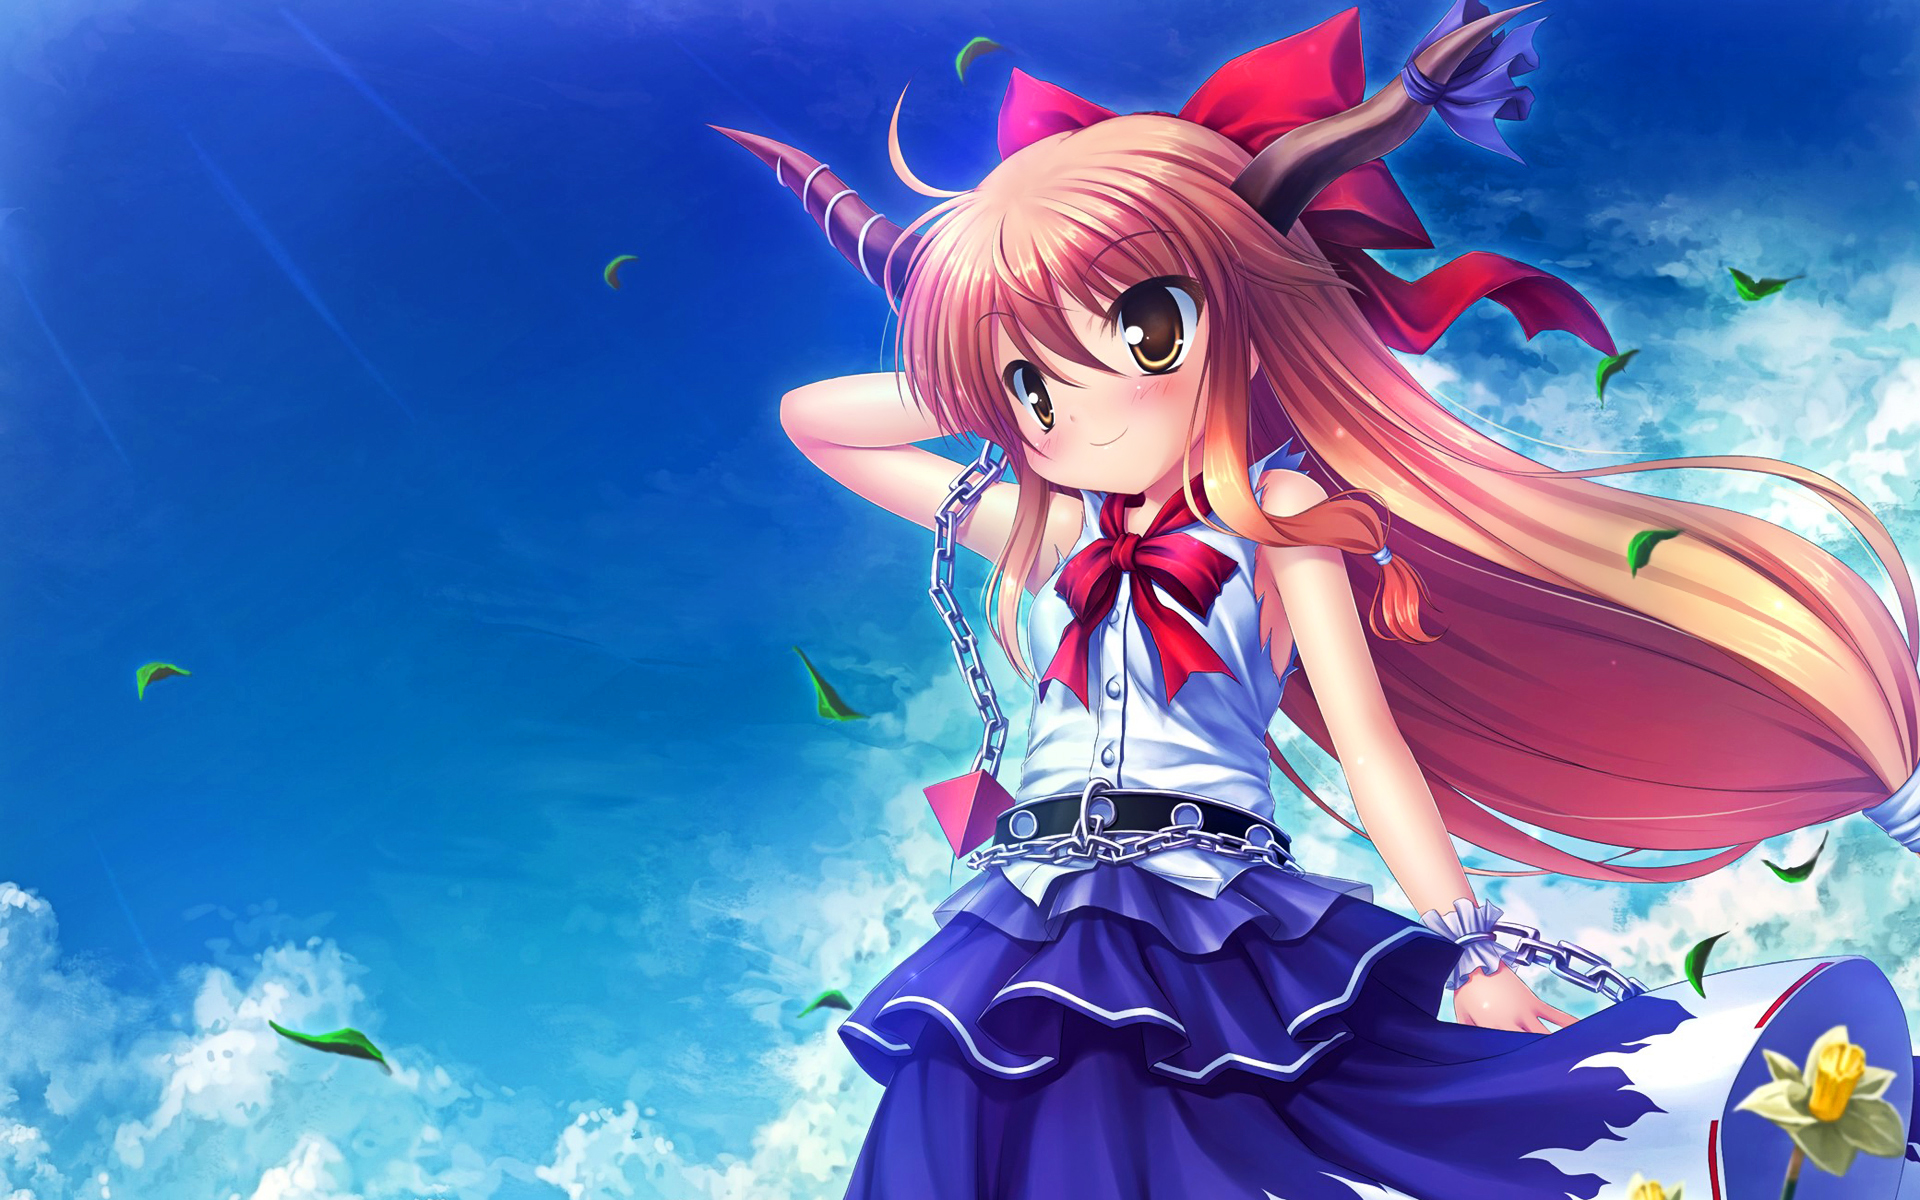 anime HD wallpaper for download